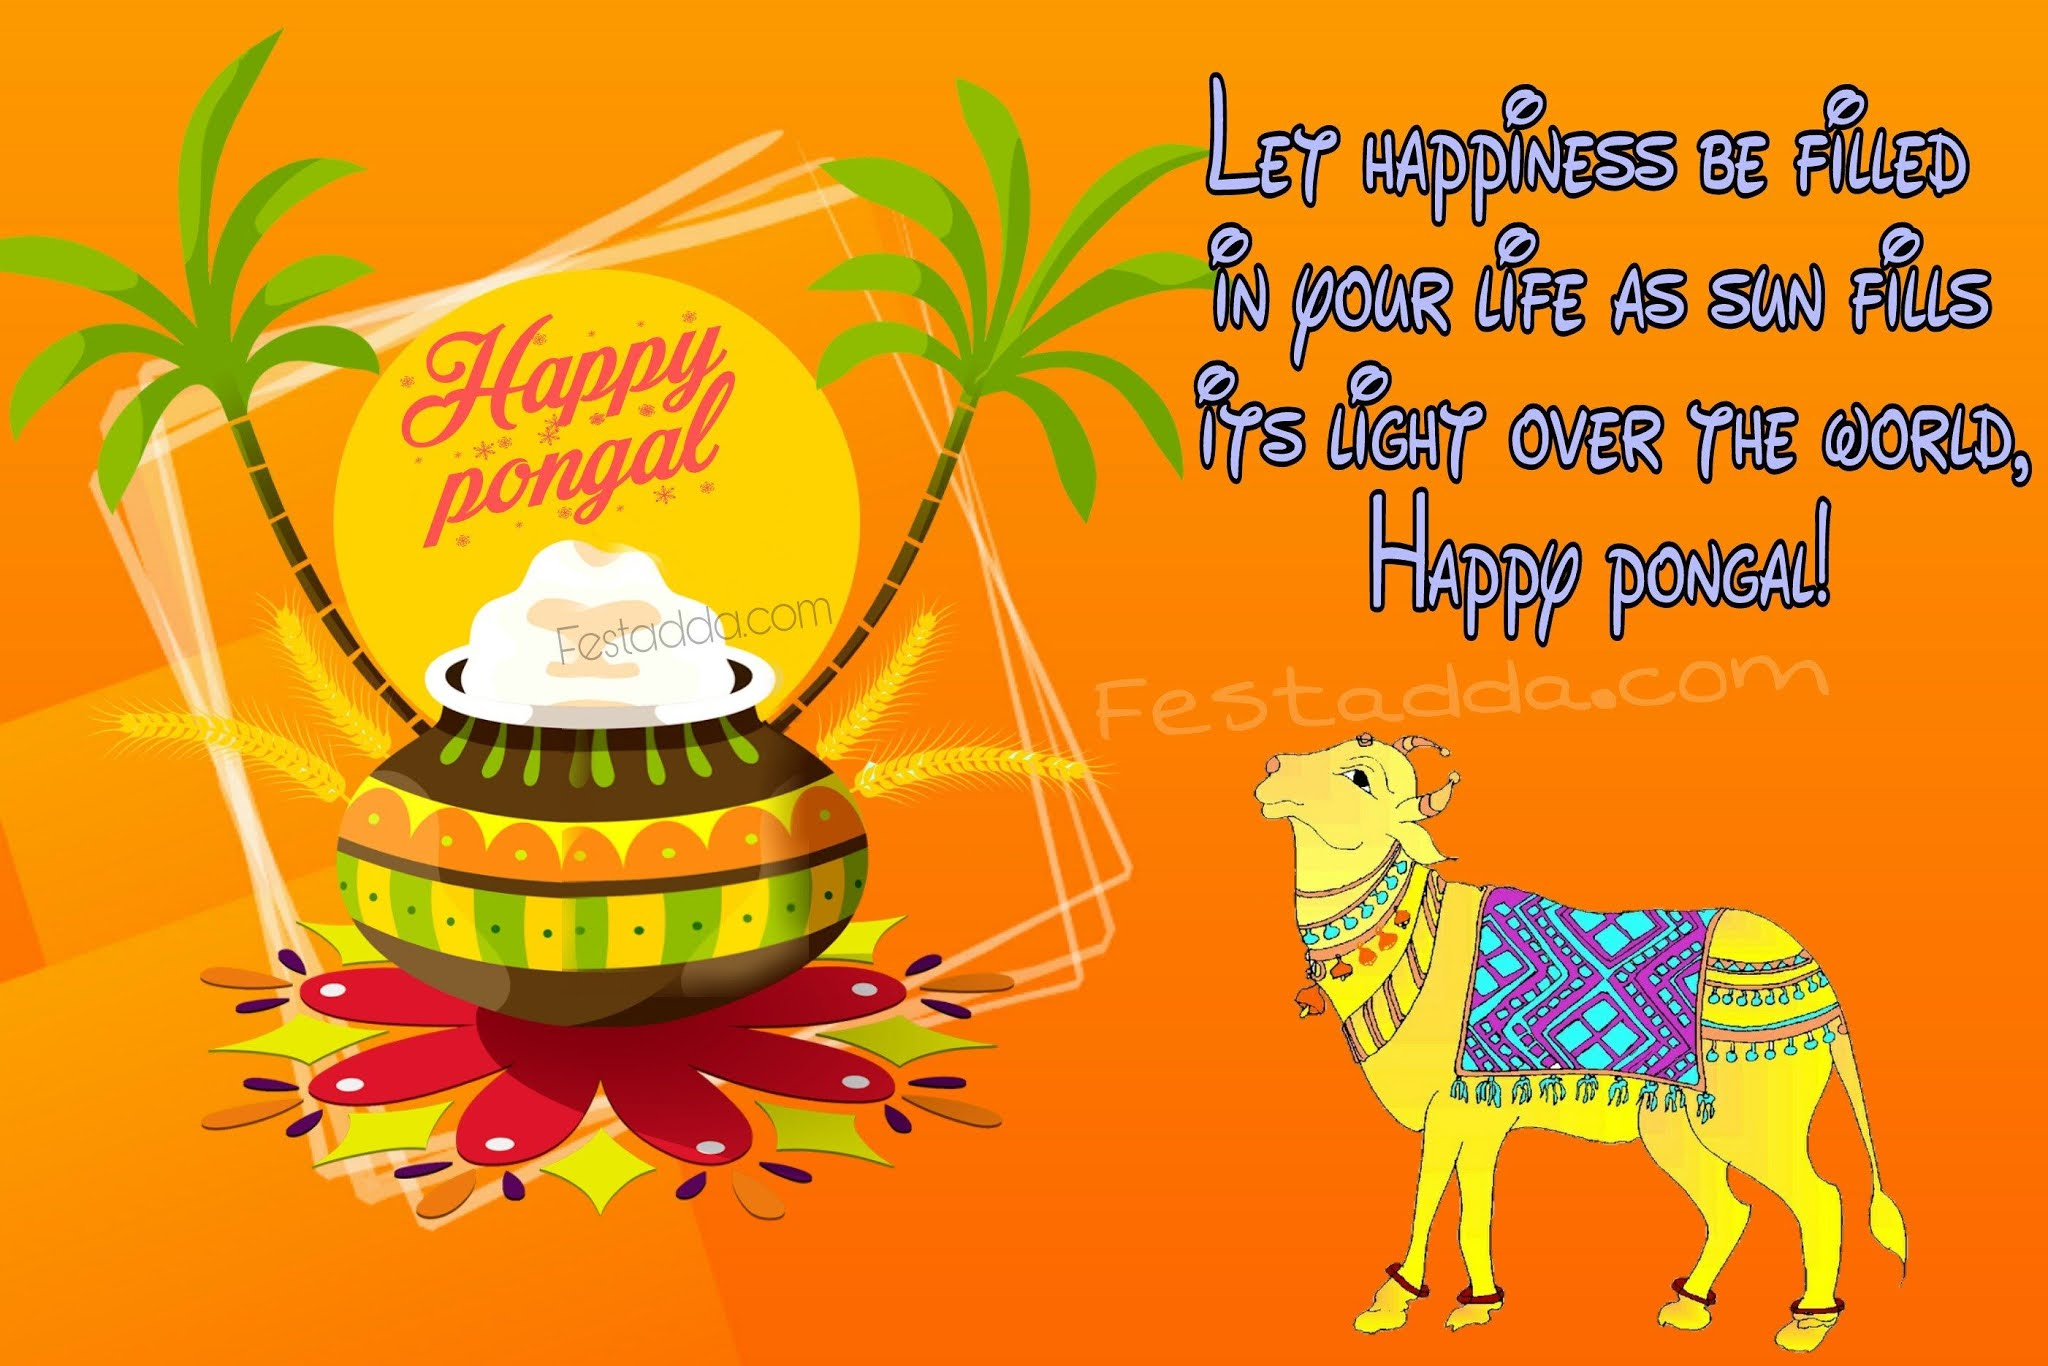 Happy Pongal 2021 Wishes, Greetings, Images, Quotes, Status, Messages, Photos